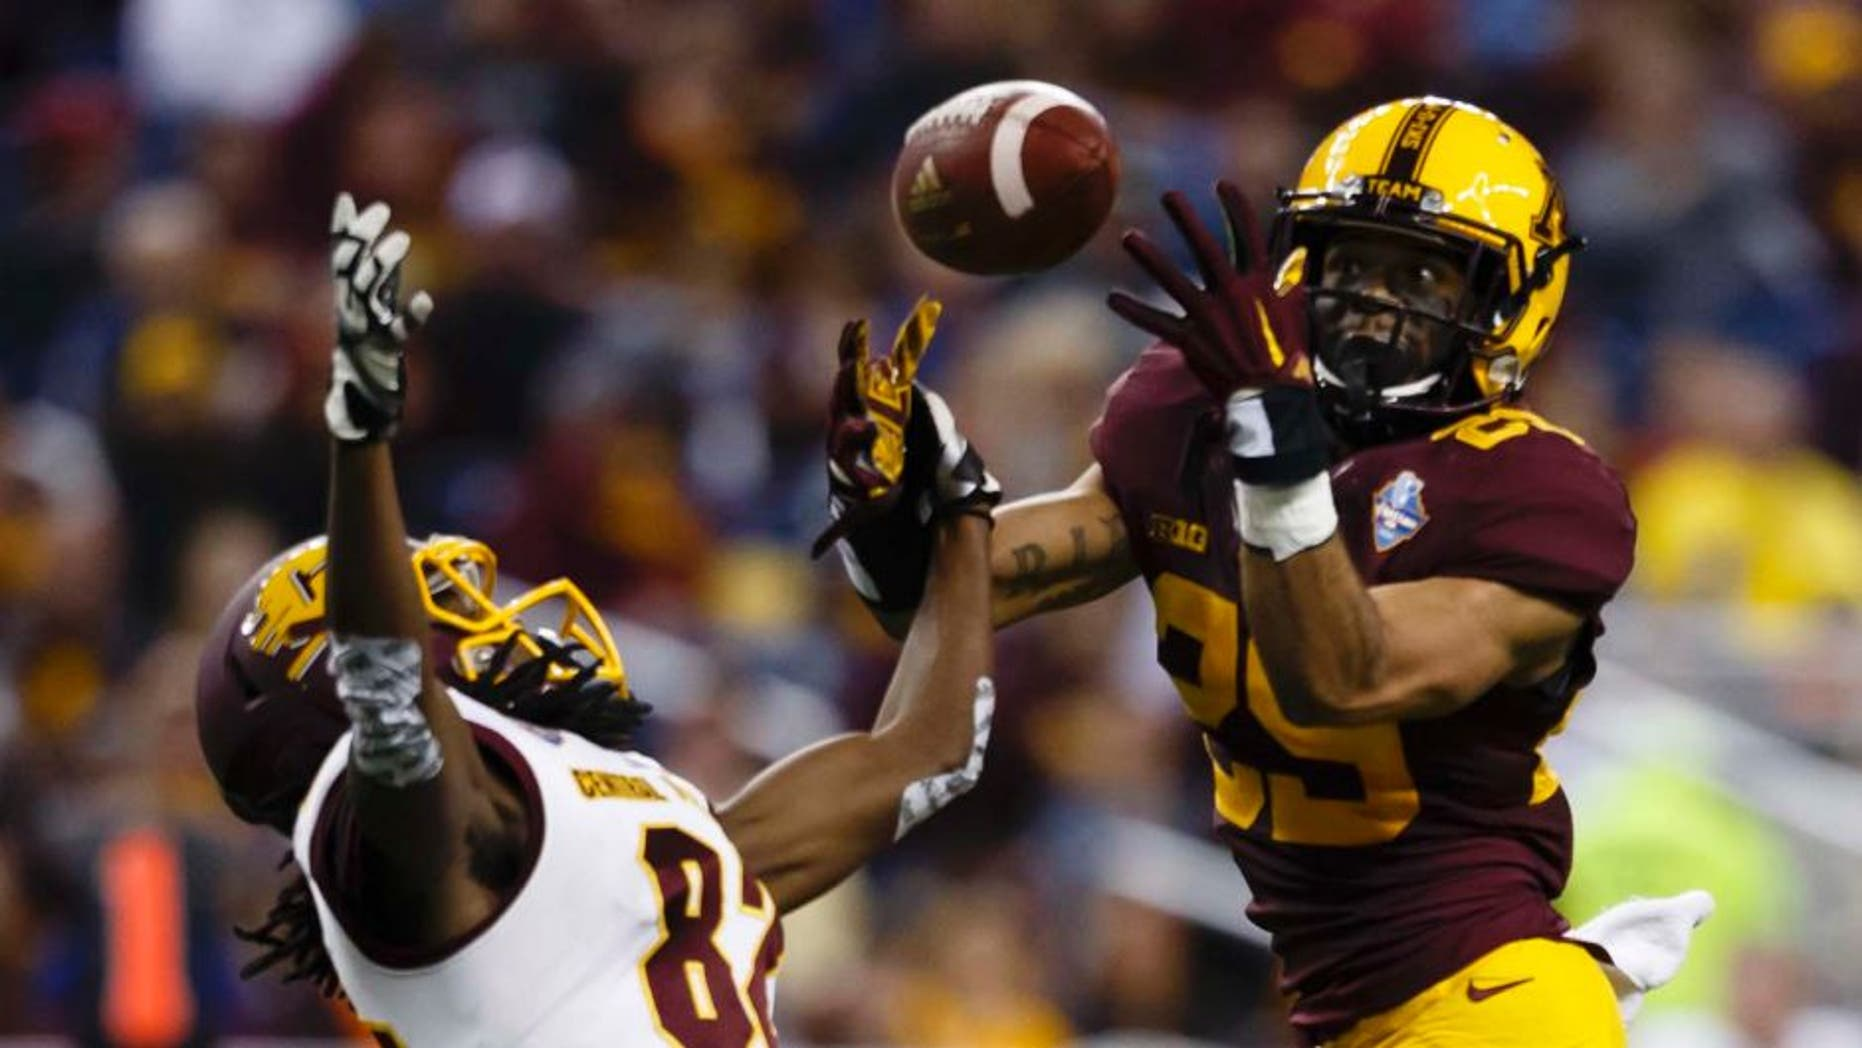 Minnesota Golden Gophers defensive back Briean Boddy-Calhoun (right) breaks up a pass to Central Michigan Chippewas wide receiver Corey Willis in the first half at Ford Field in Detroit on Monday, Dec. 28, 2015.